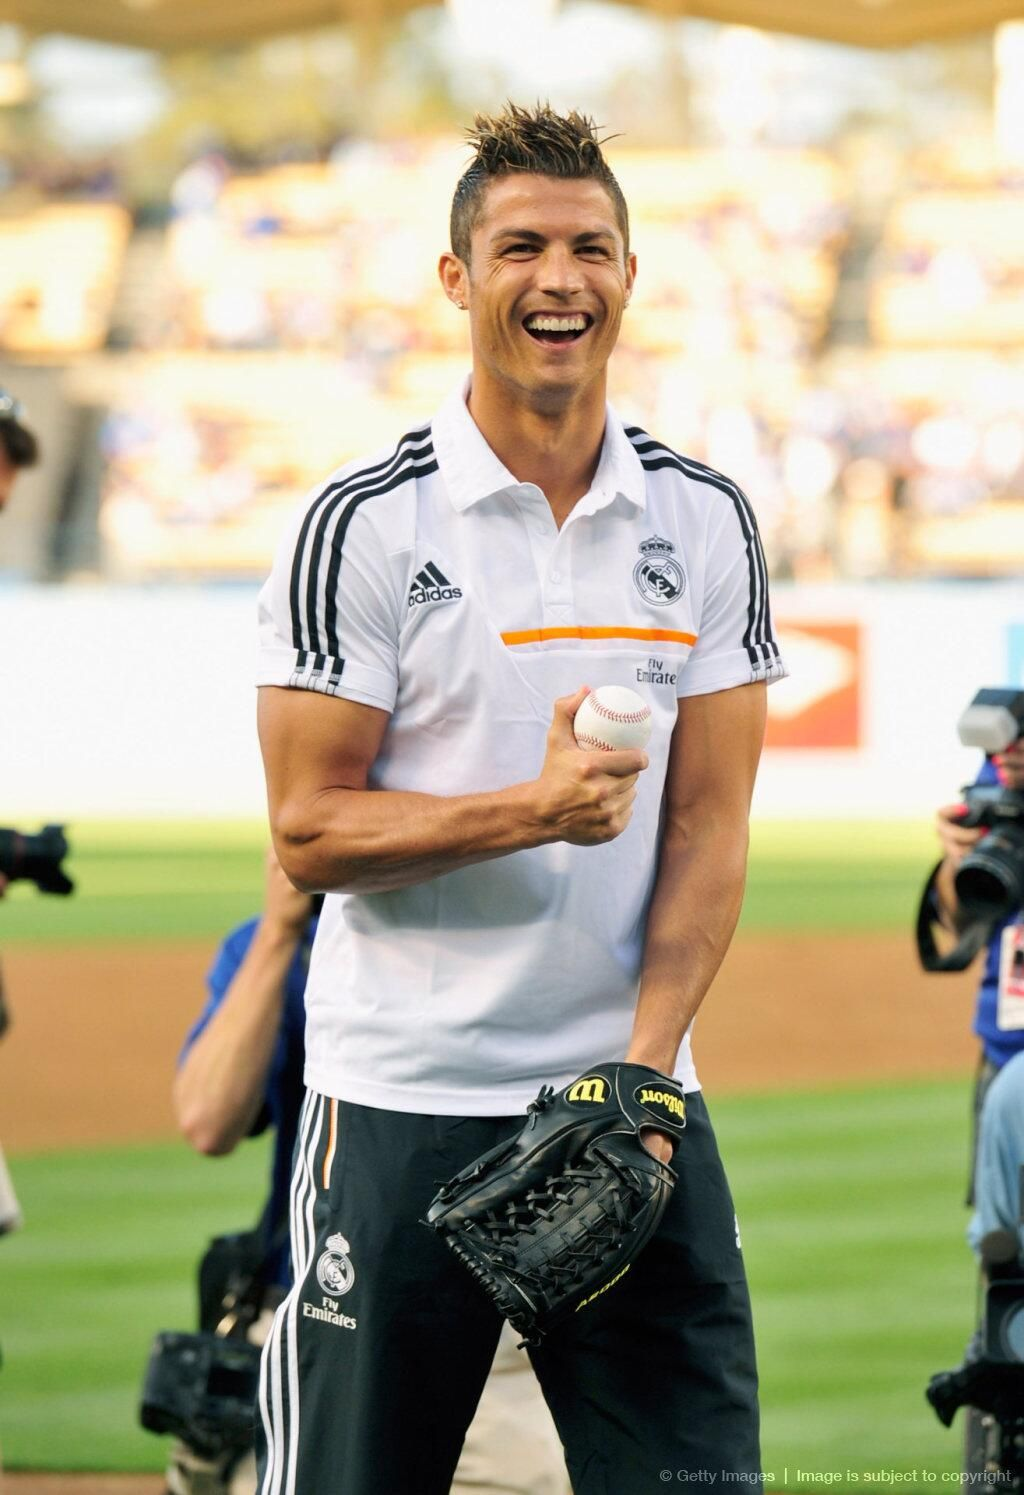 Cristiano at the Dodgers stadium - Real Madrid 2013